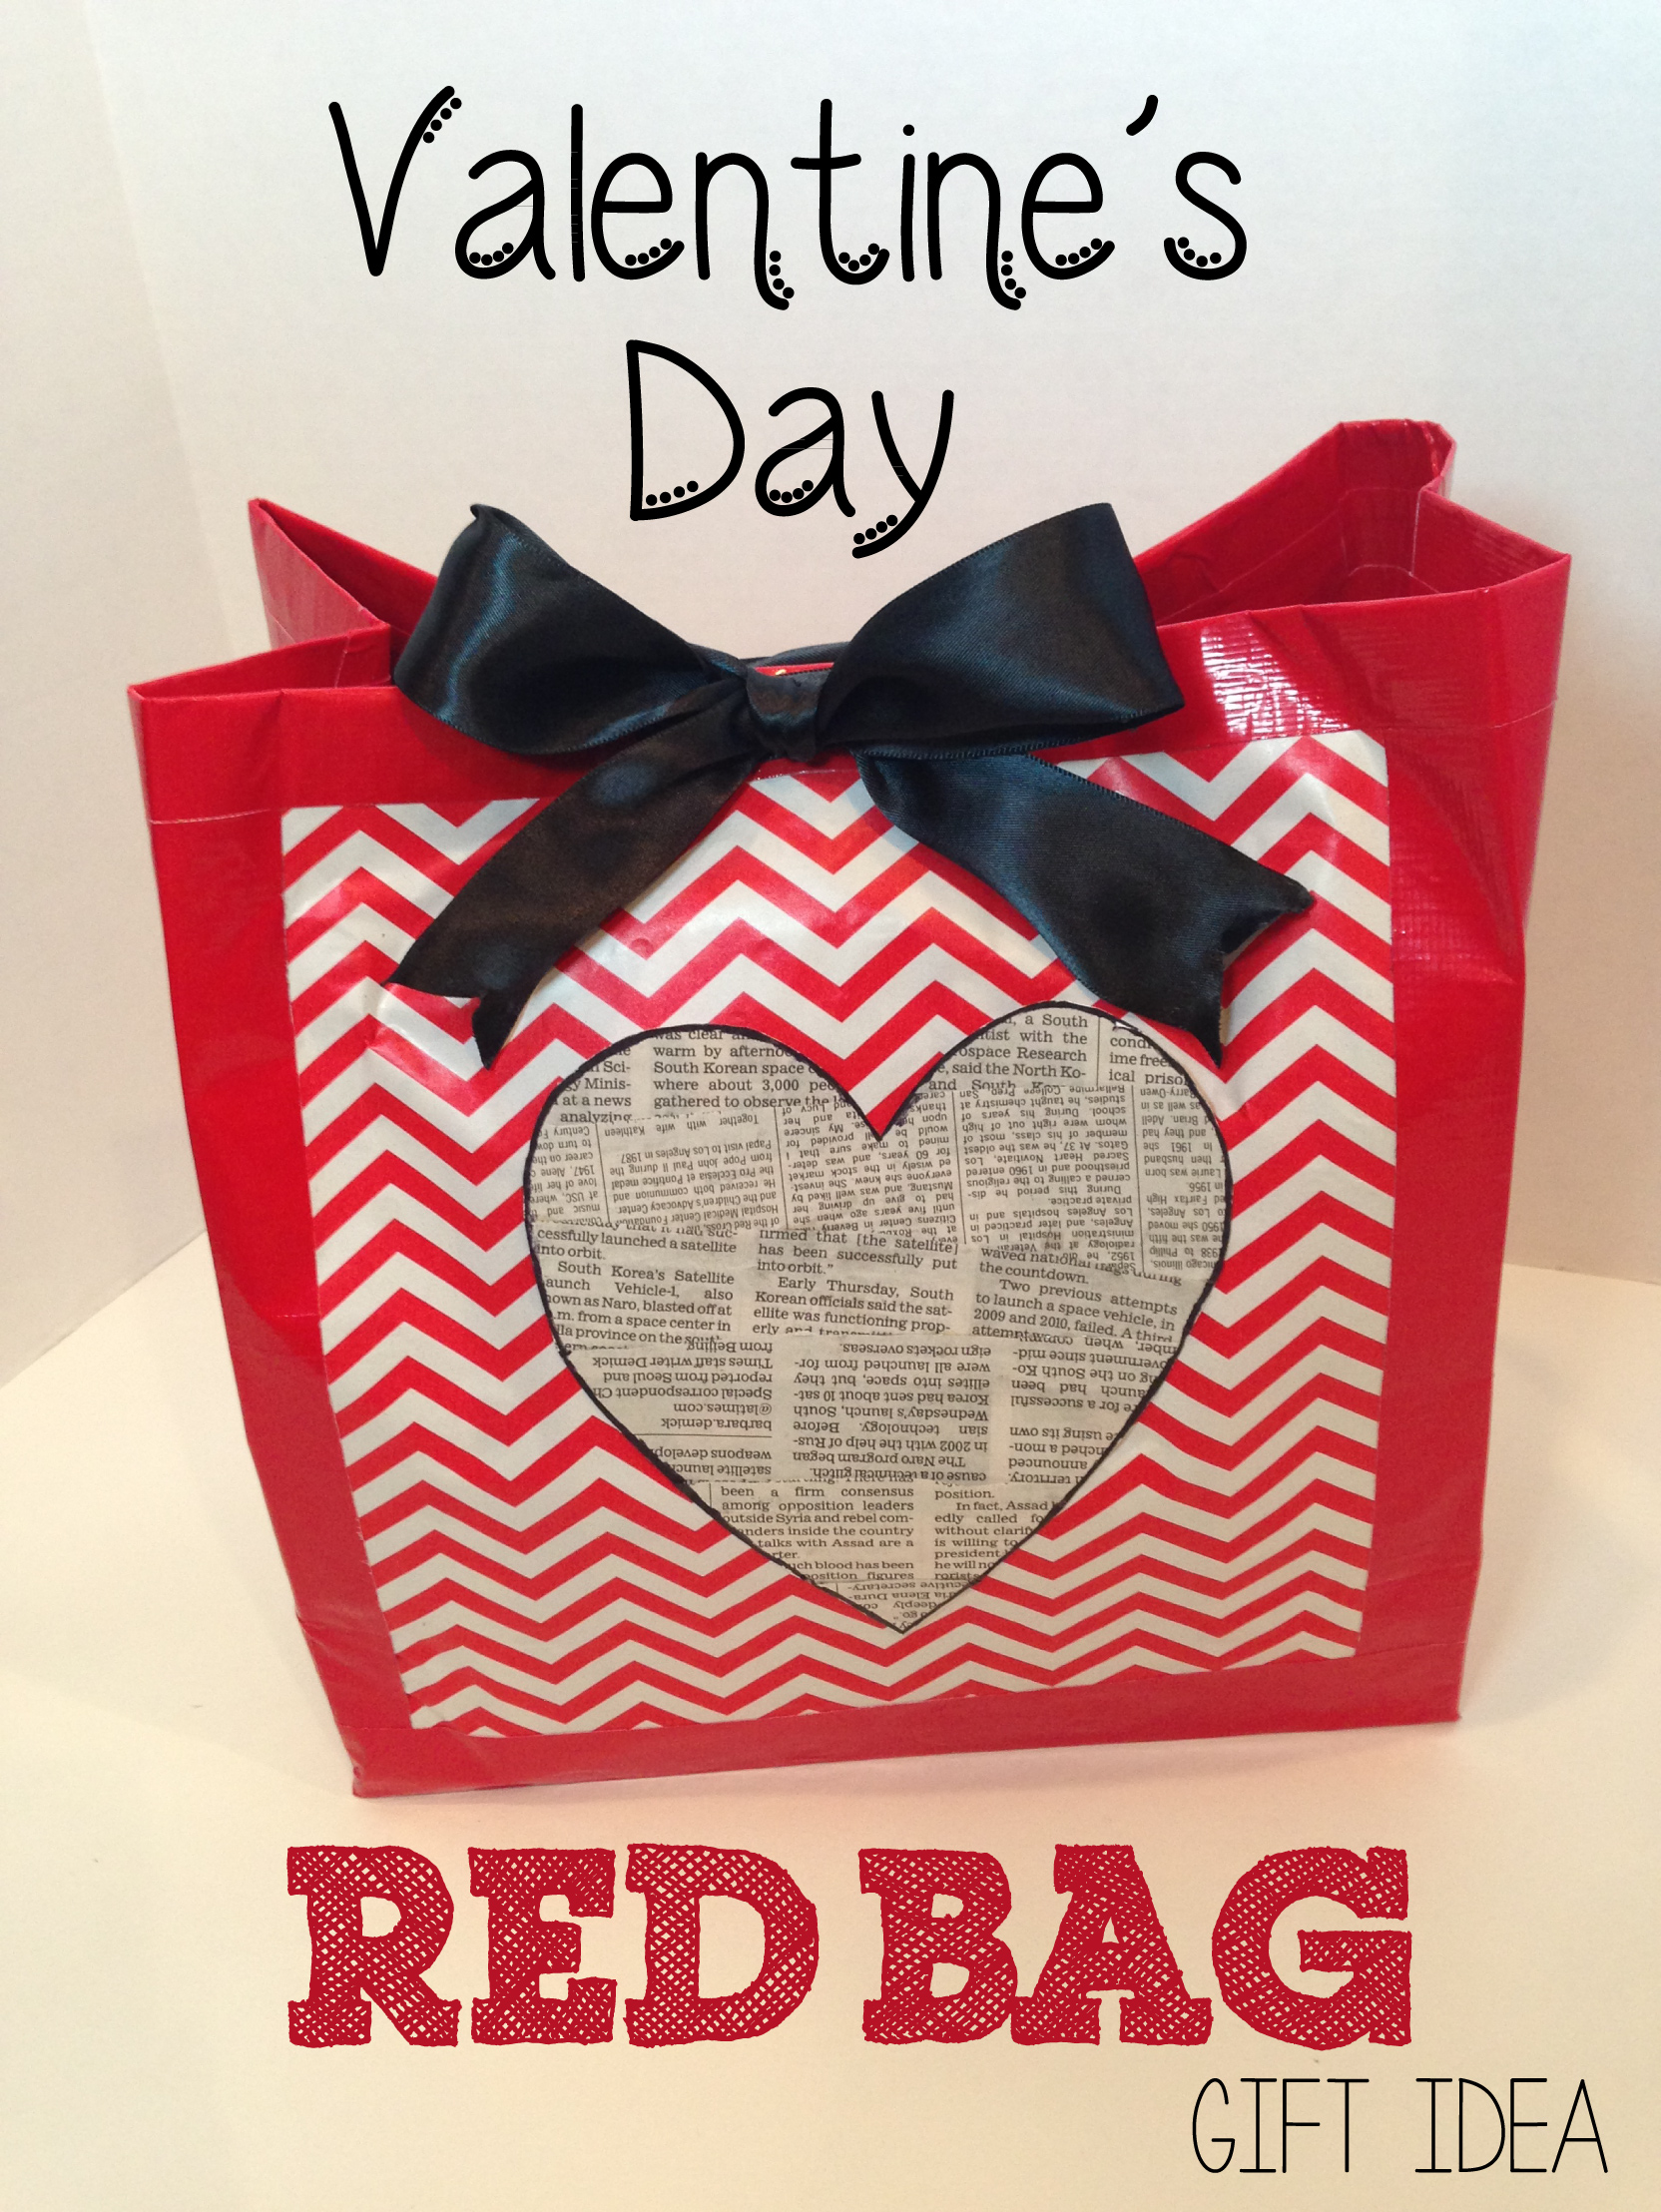 Valentine S Day Red Bag Gift Idea